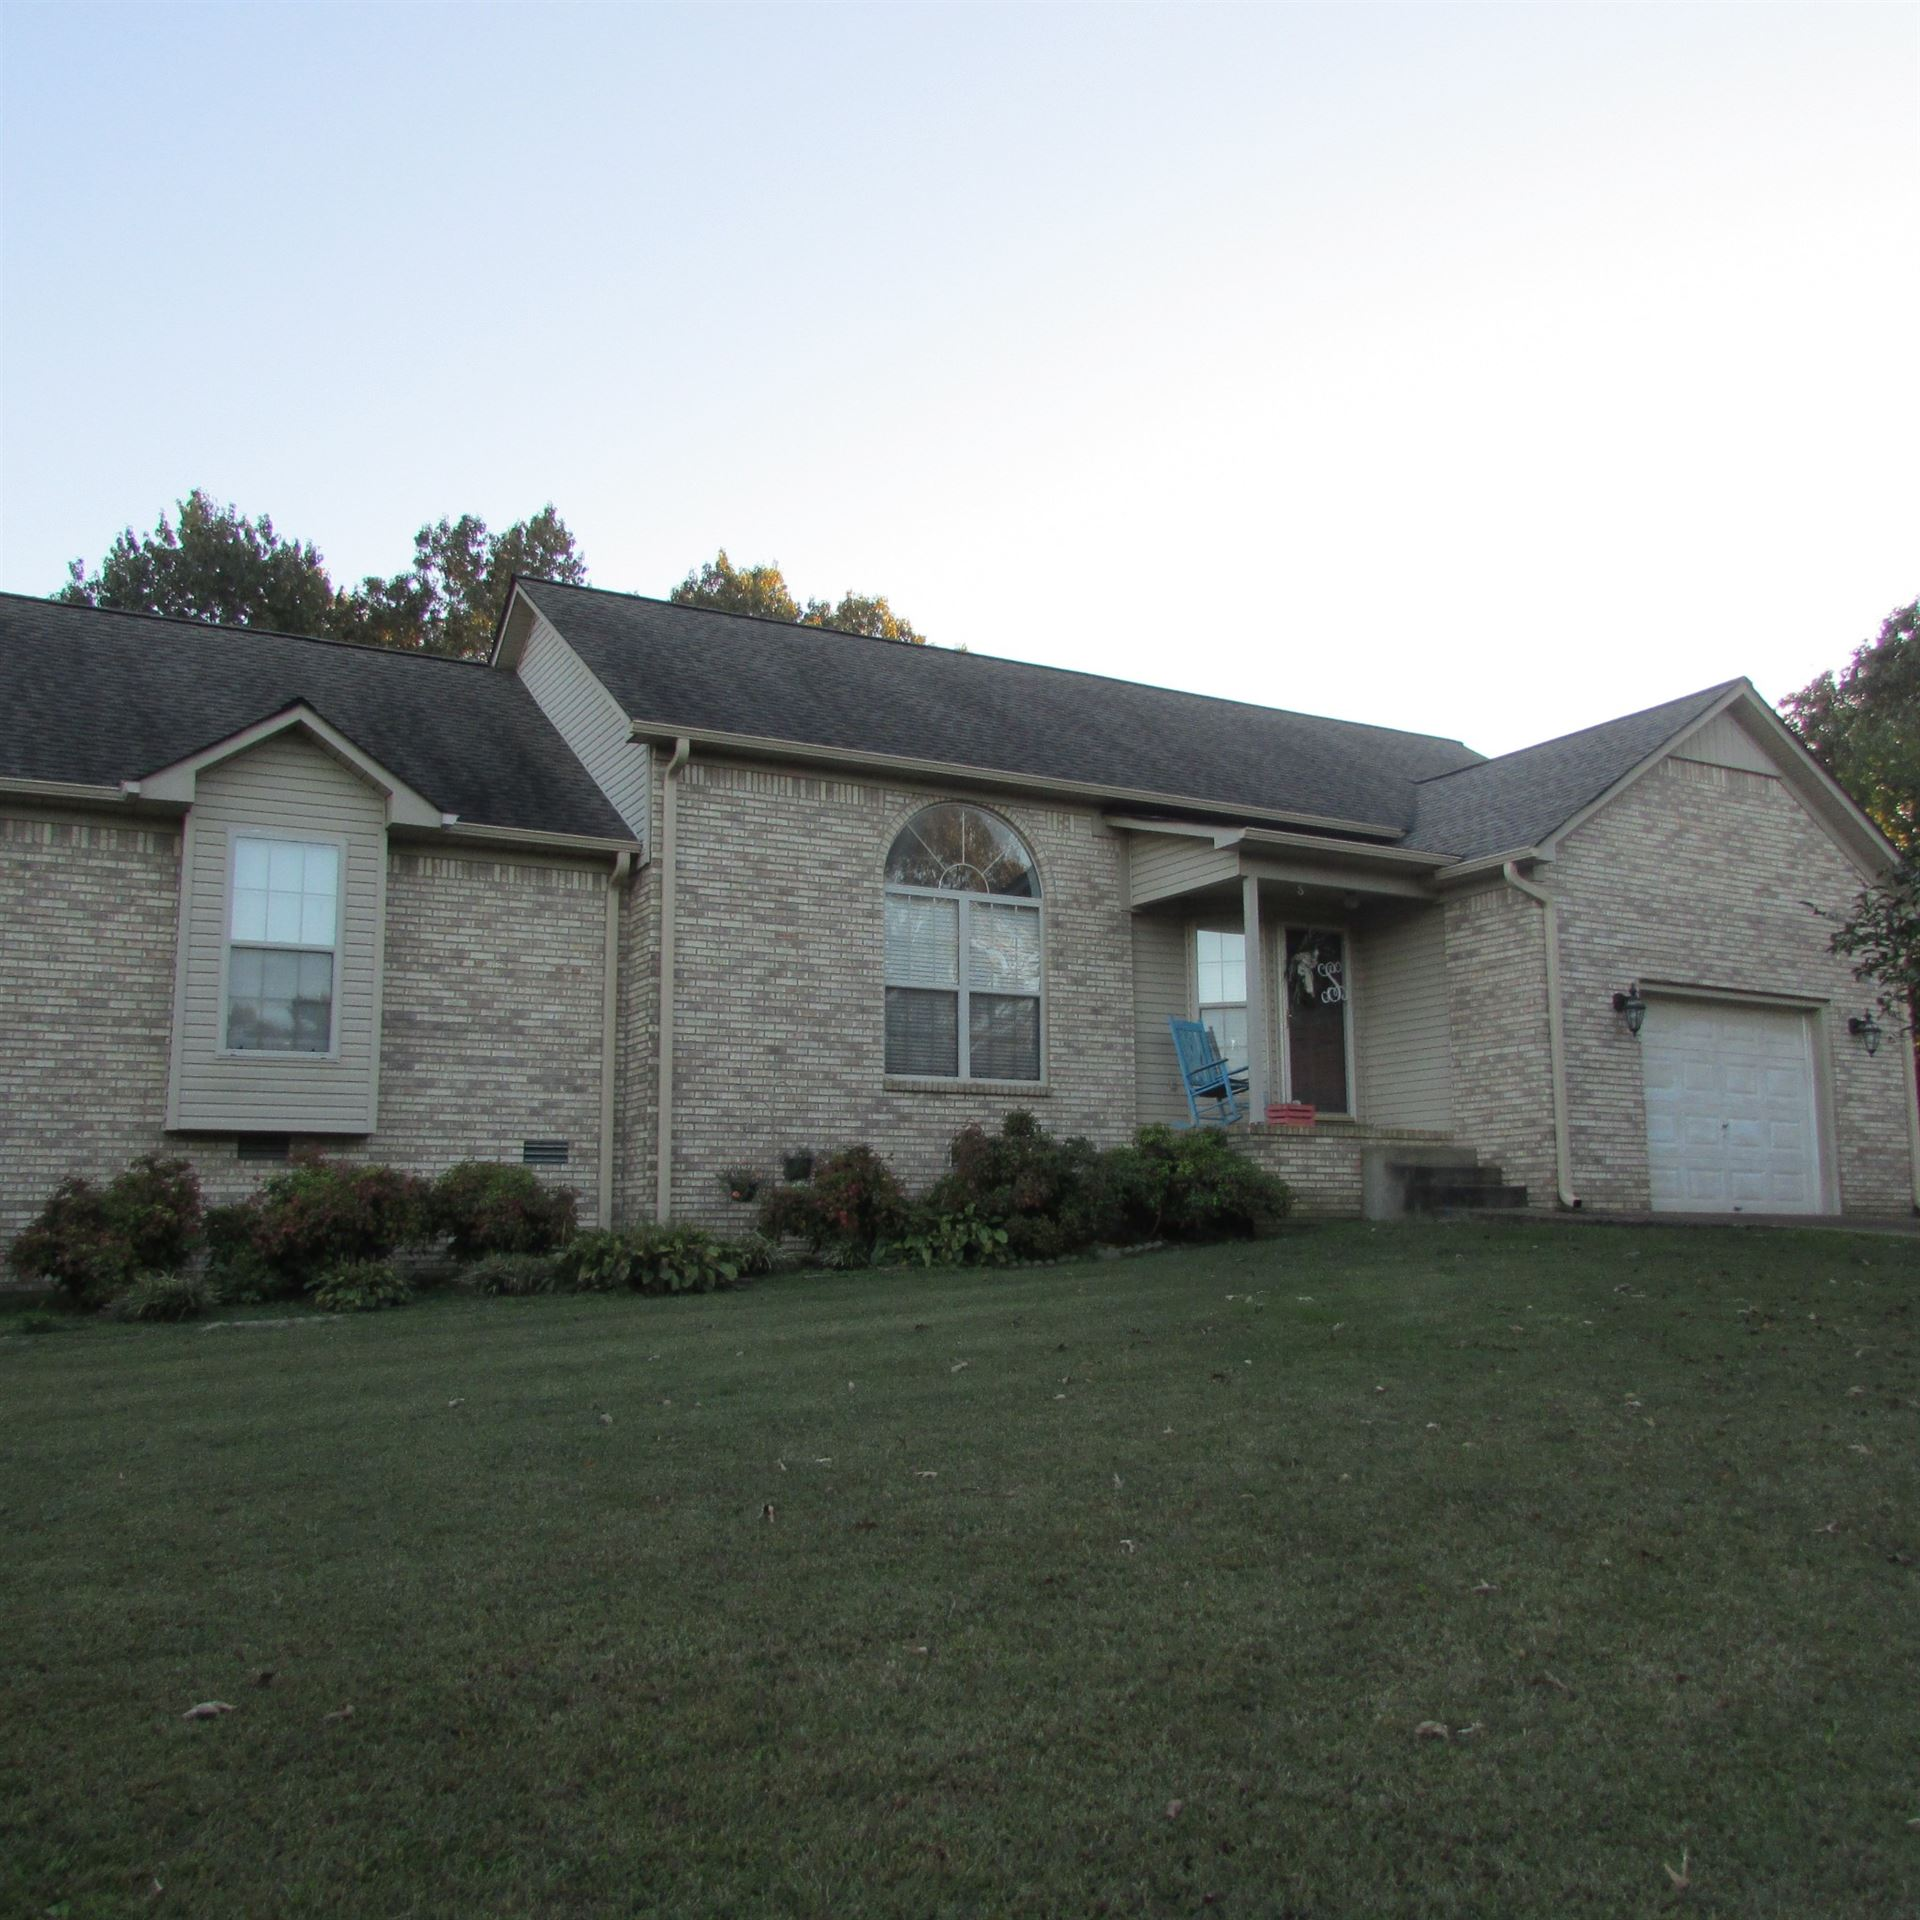 Photo of 213 W Laurel Dr W, Lawrenceburg, TN 38464 (MLS # 2199468)